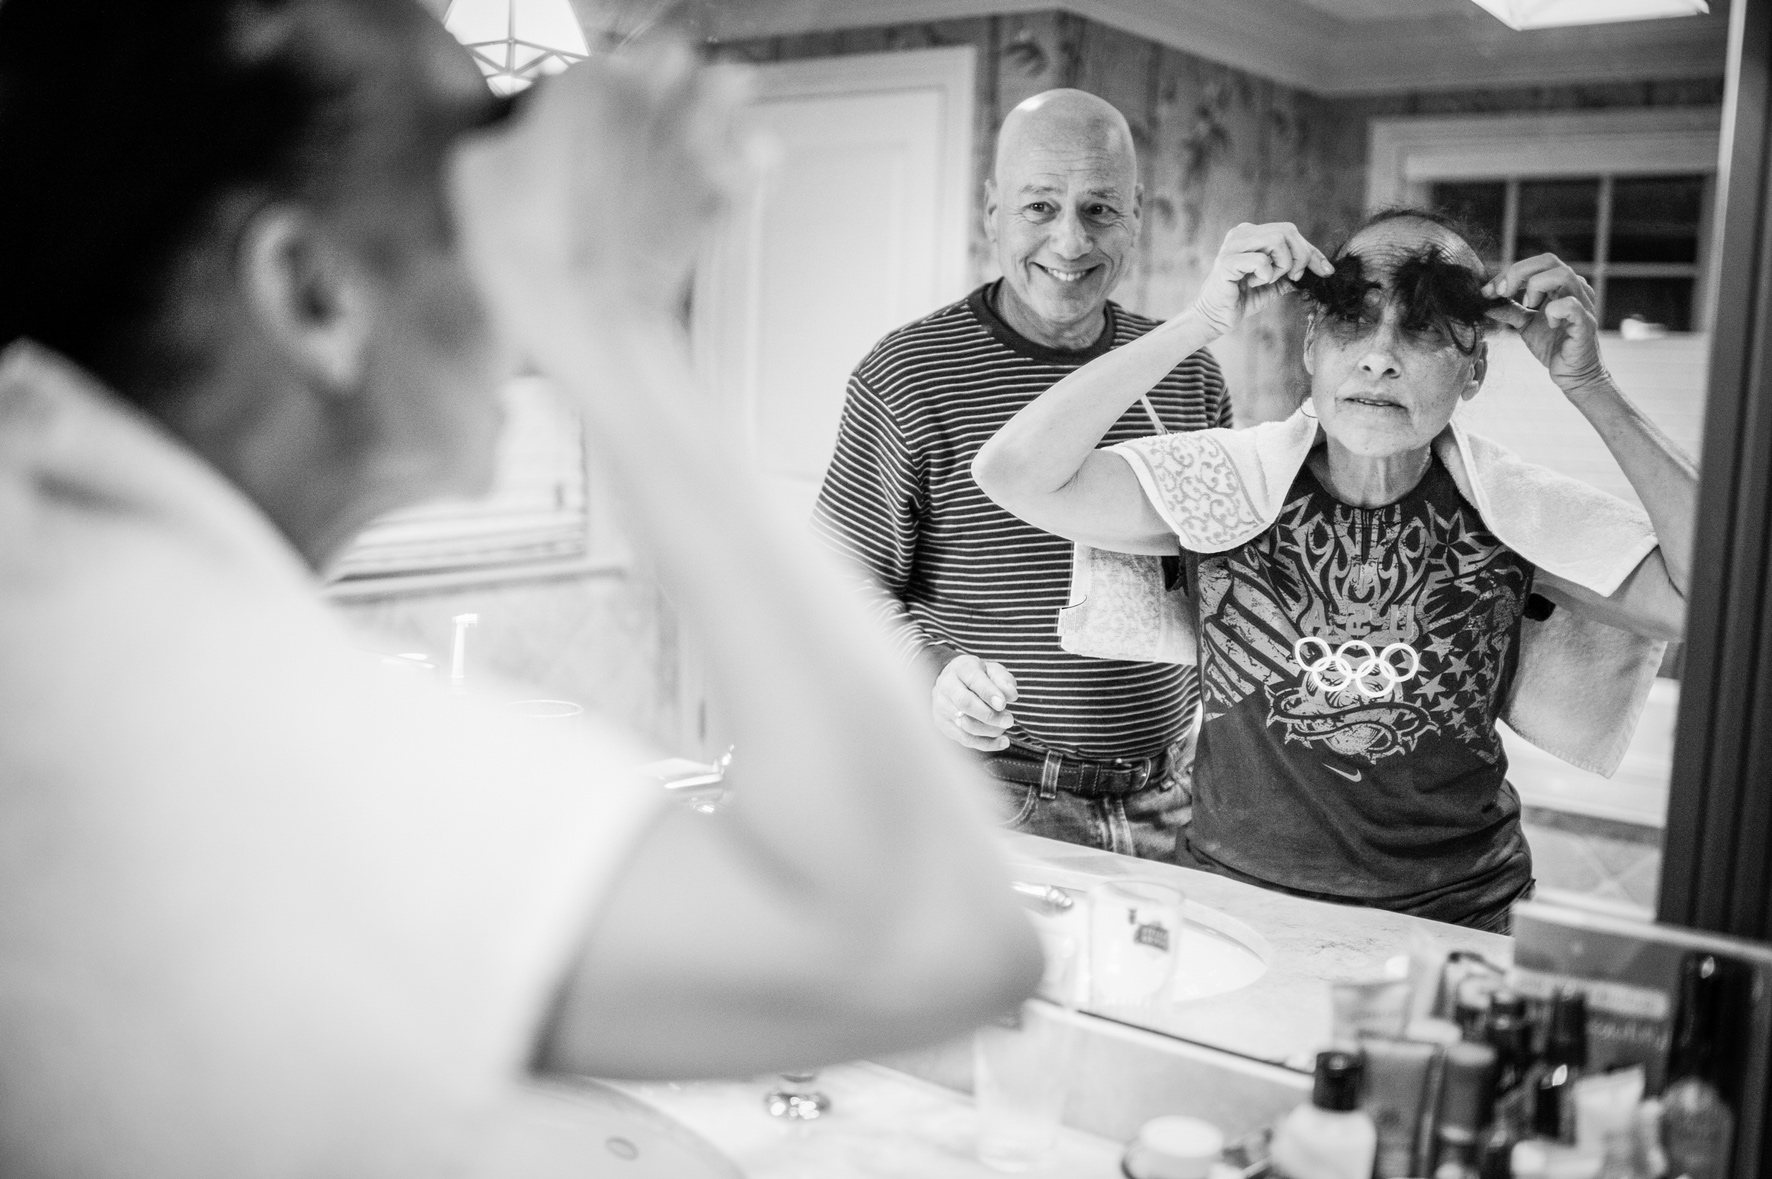 """Nancy Borowick's mother and father, having cut their hair knowing it would fall out as a side-effect of chemotherapy. """"Using humour allowed them to move forward and deal with what was happening because it was truly out of their control,"""" says Borowick. Photo: Nancy Borowick."""